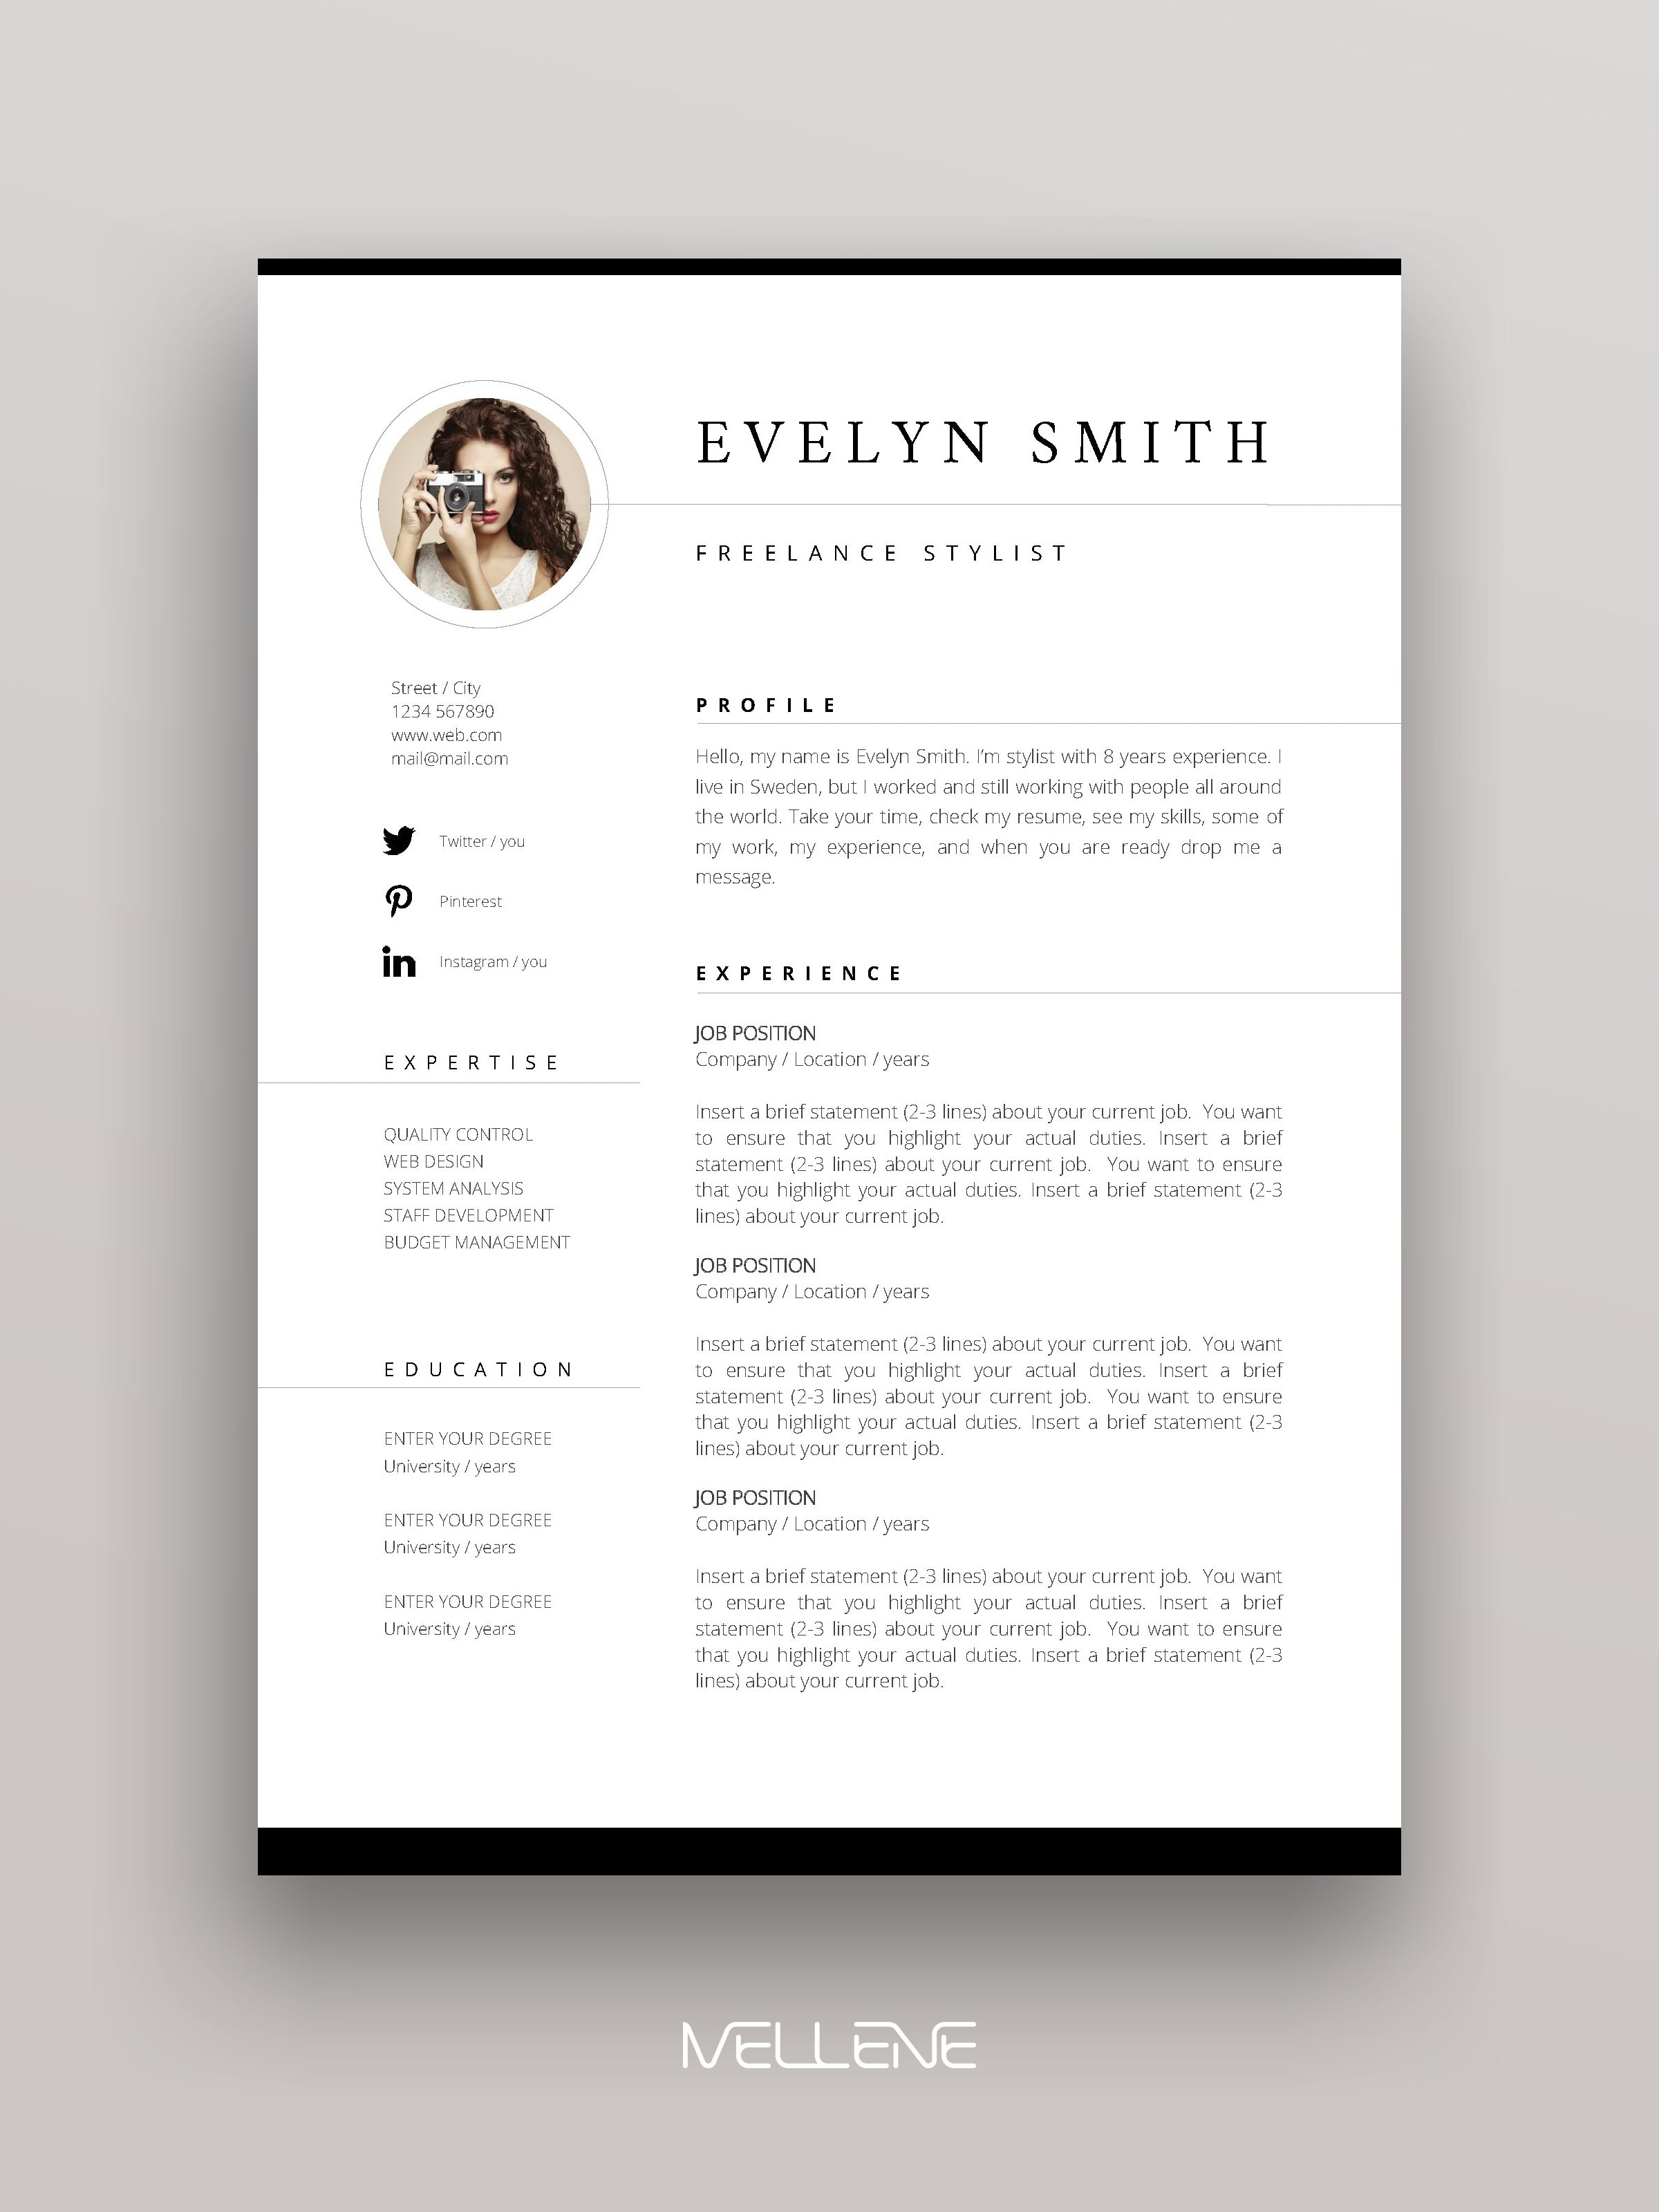 Resume Template 3 Page Cv Template Cover Letter Instant Download For Ms Word Evelyn Presentation Layout Minimal Graphic Design Presentation Design